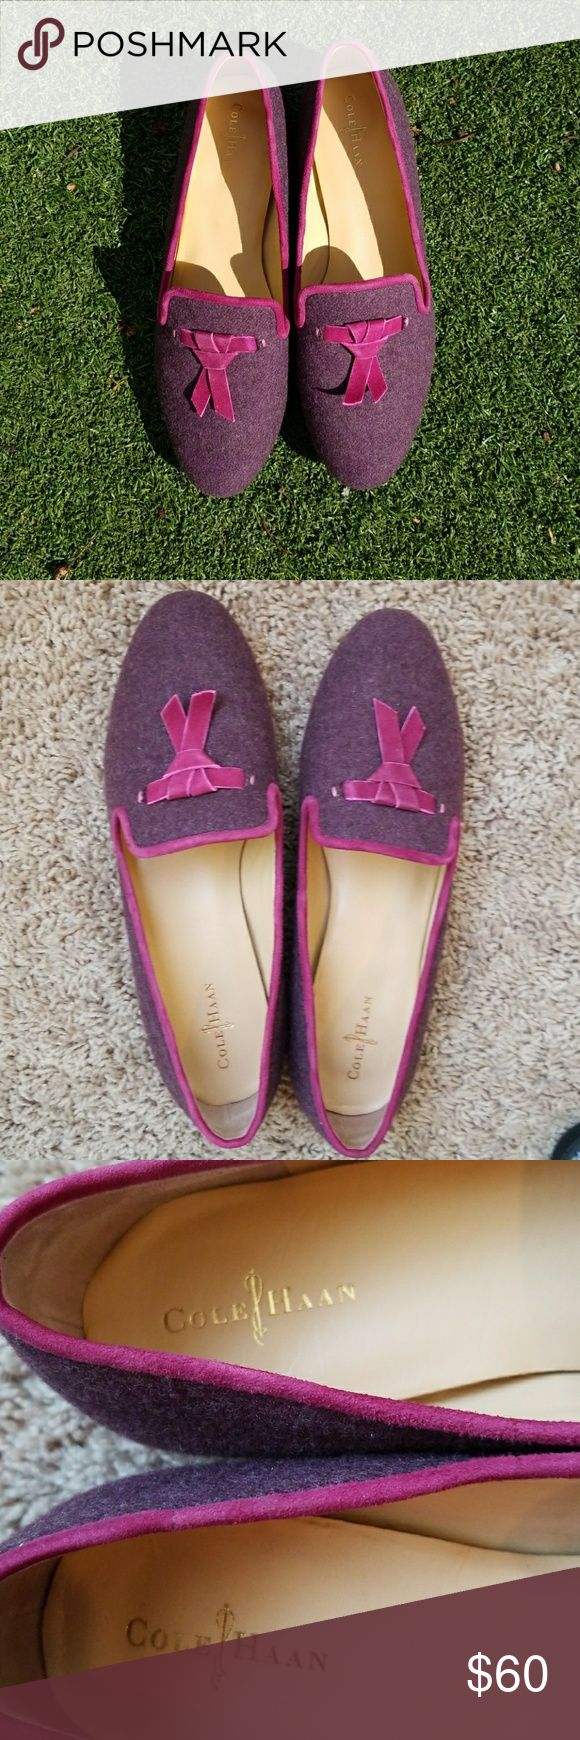 Cole Haan Nike Air Max Ballet Slippers Adorable with velvet tassel. Excellent condition. Some sole wear. Cole Haan Shoes Flats & Loafers